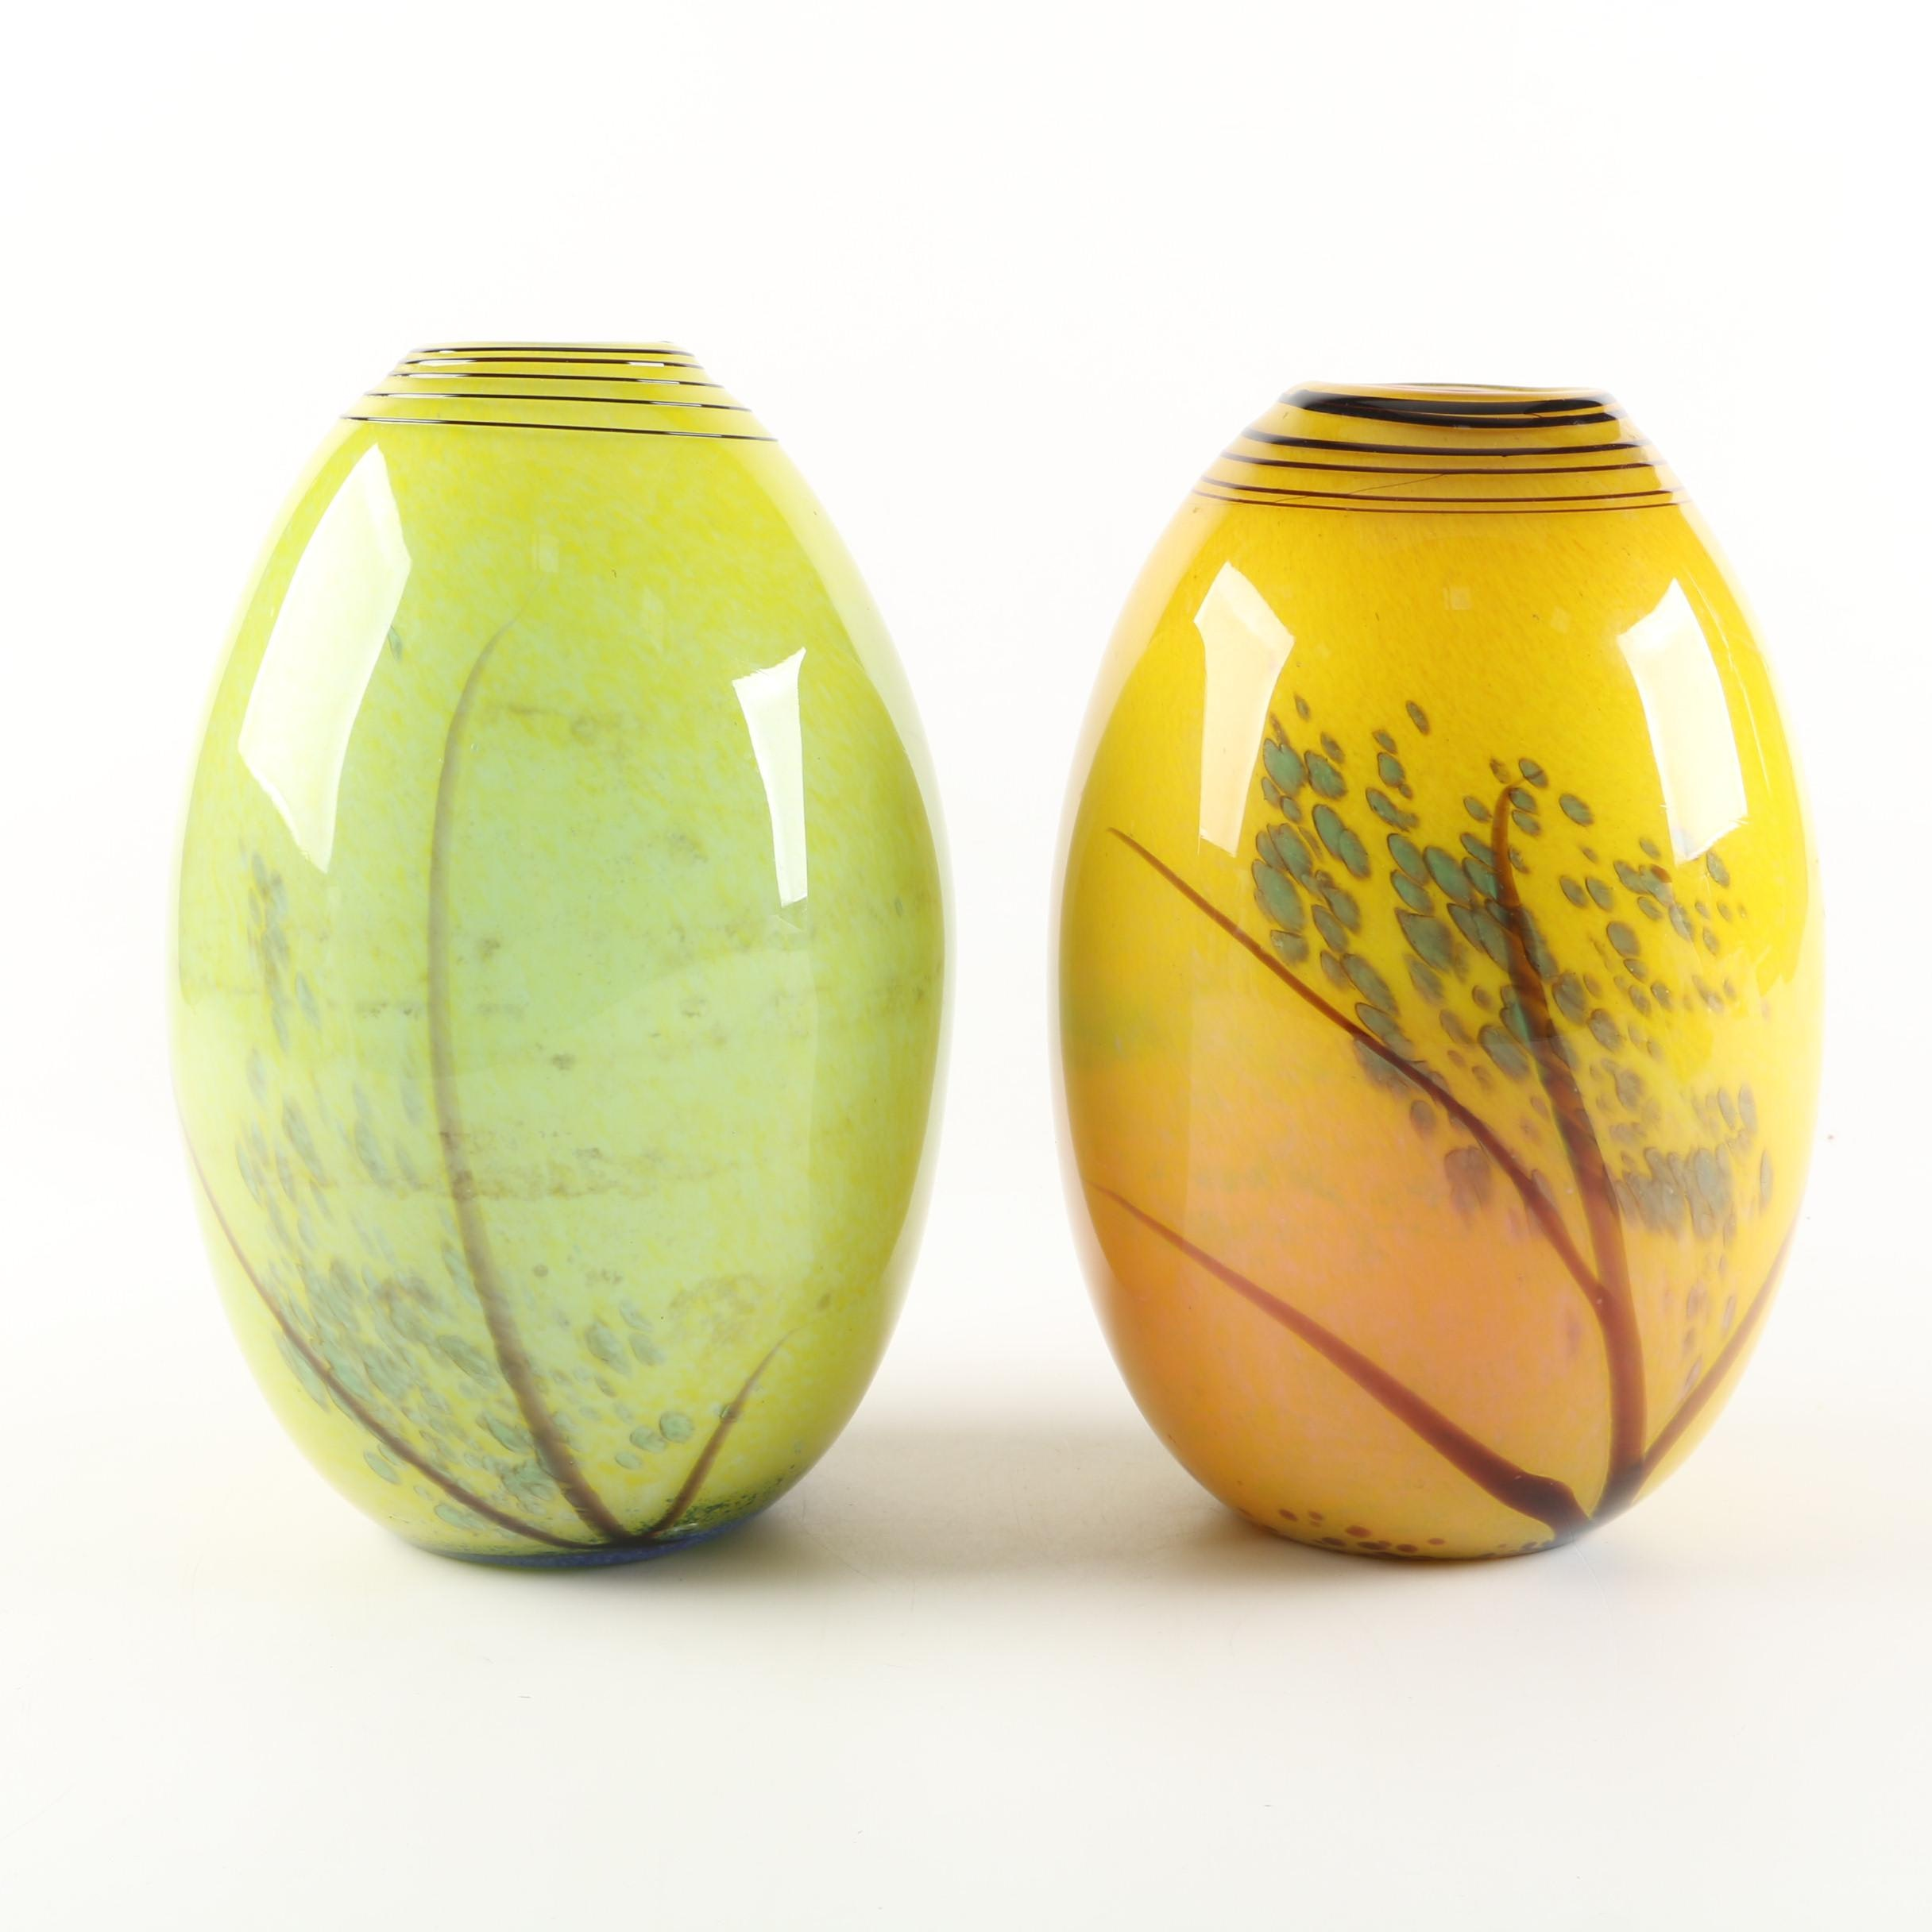 Murano Style Art Glass Vases with Foliate Motif